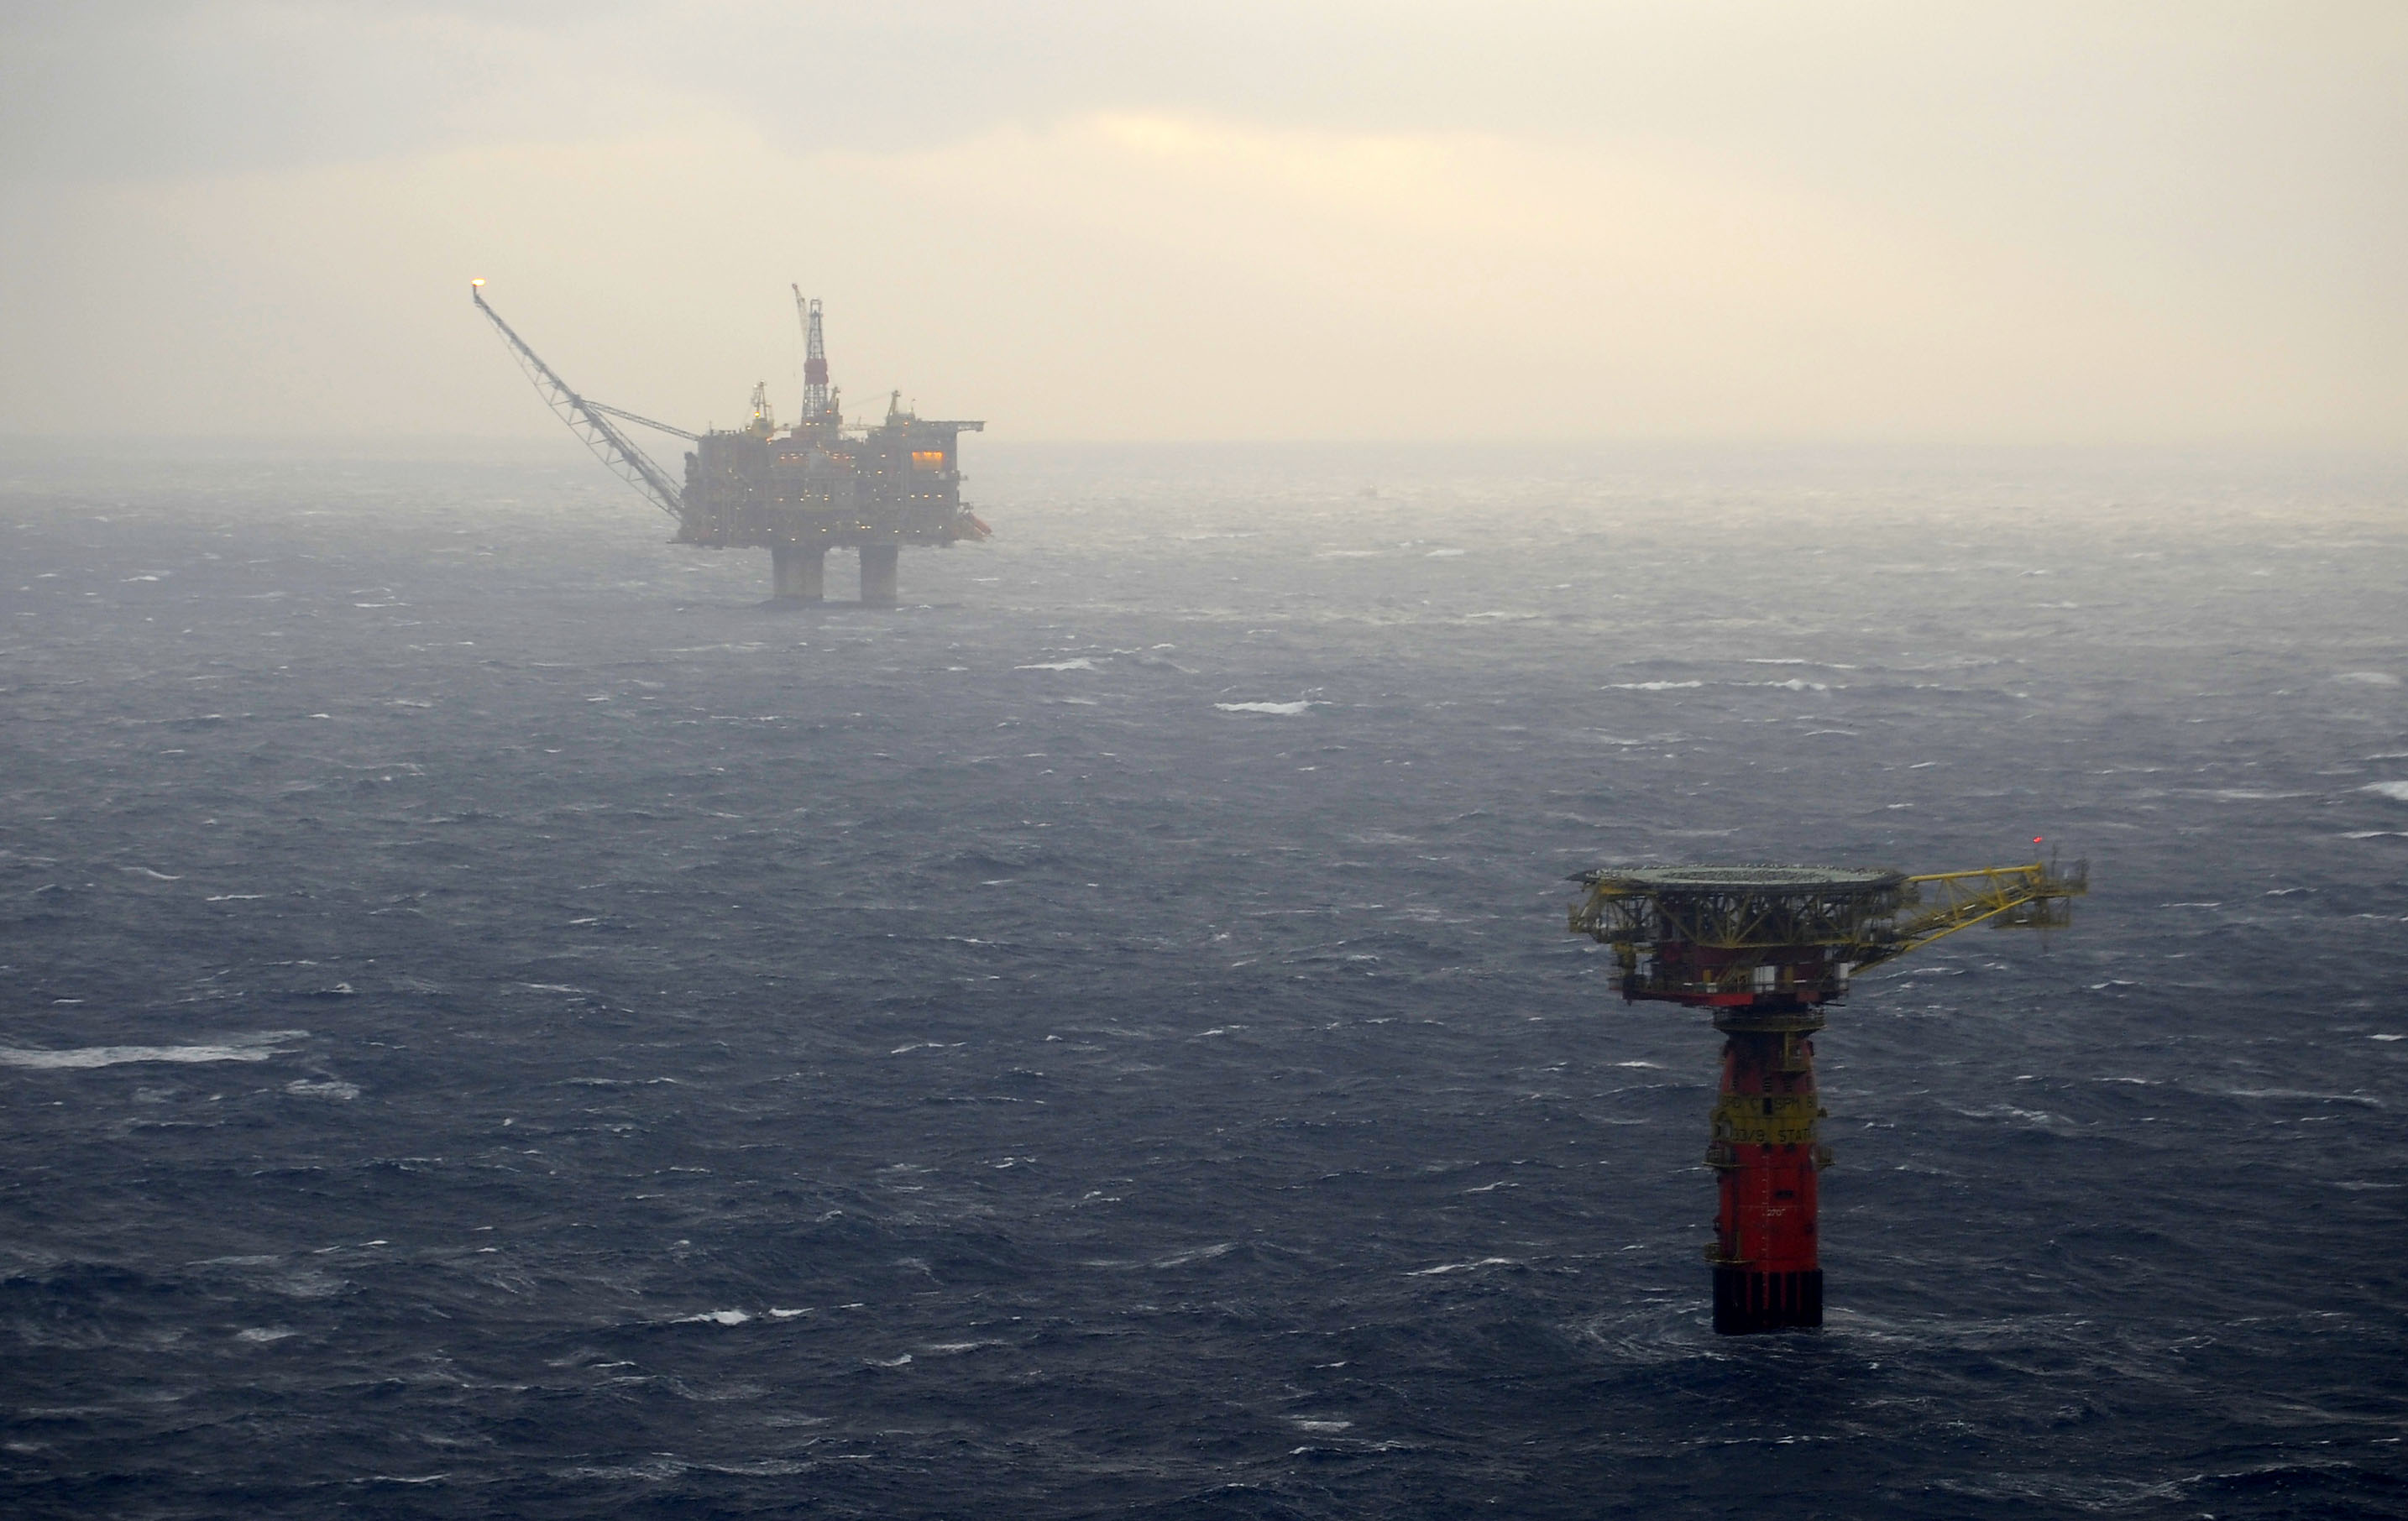 Half of the Norwegian oil rig fleet lack future contracts